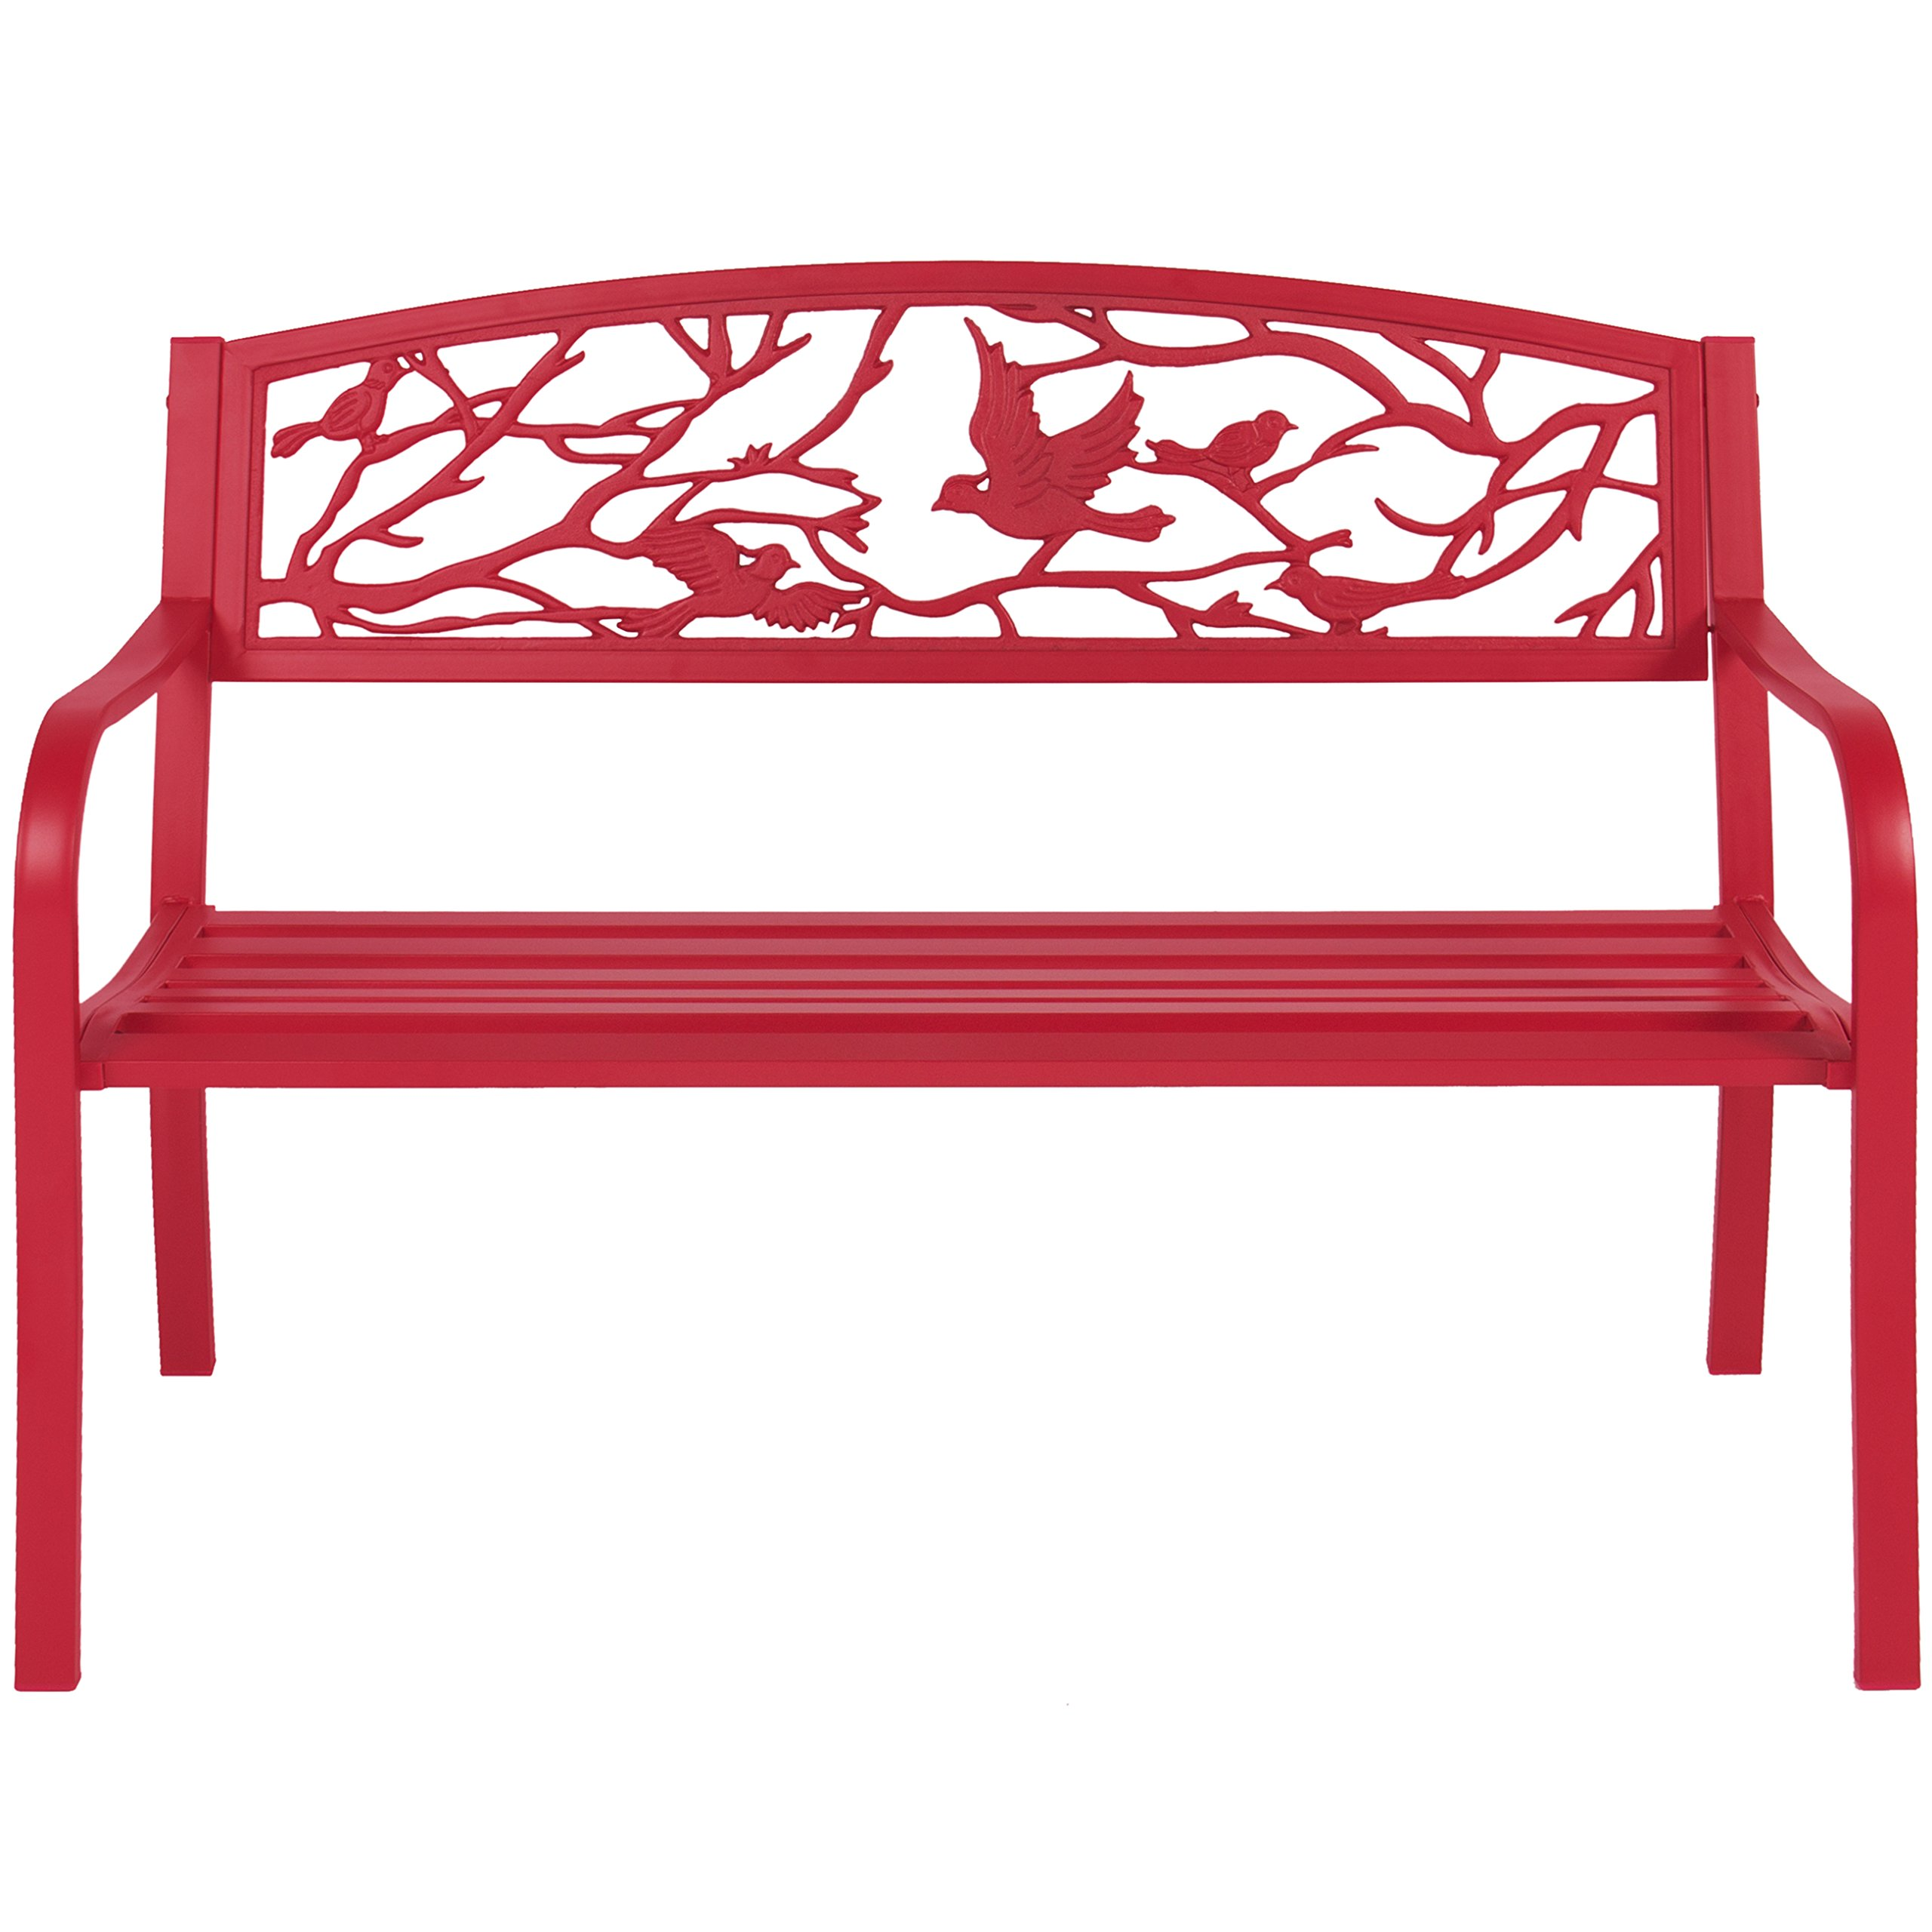 Best Choice Products Steel Park Bench Porch Furniture for Outdoor, Garden, Patio - Red by Best Choice Products (Image #2)